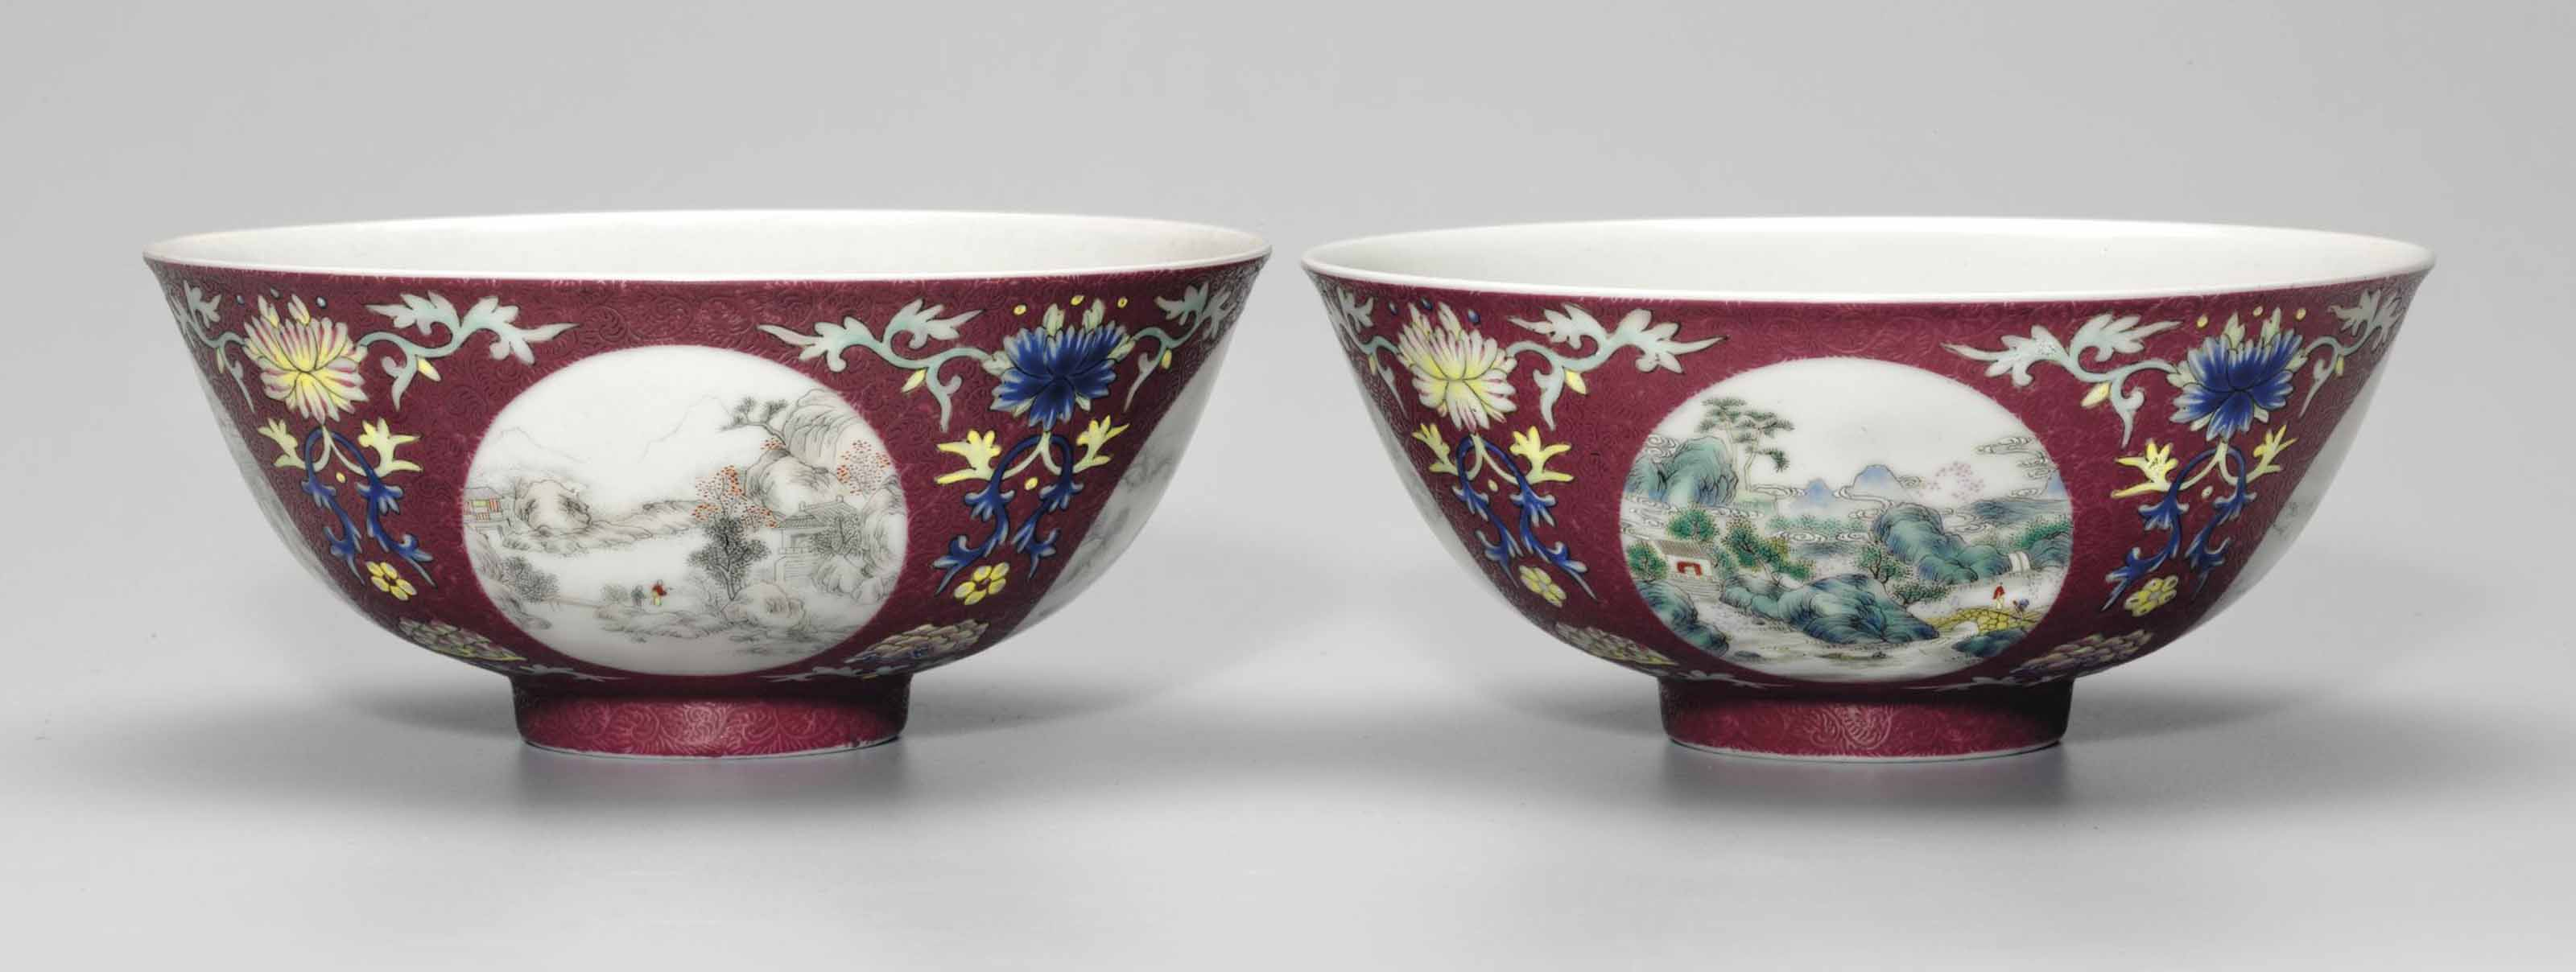 A PAIR OF SGRAFFITO RUBY-GROUN